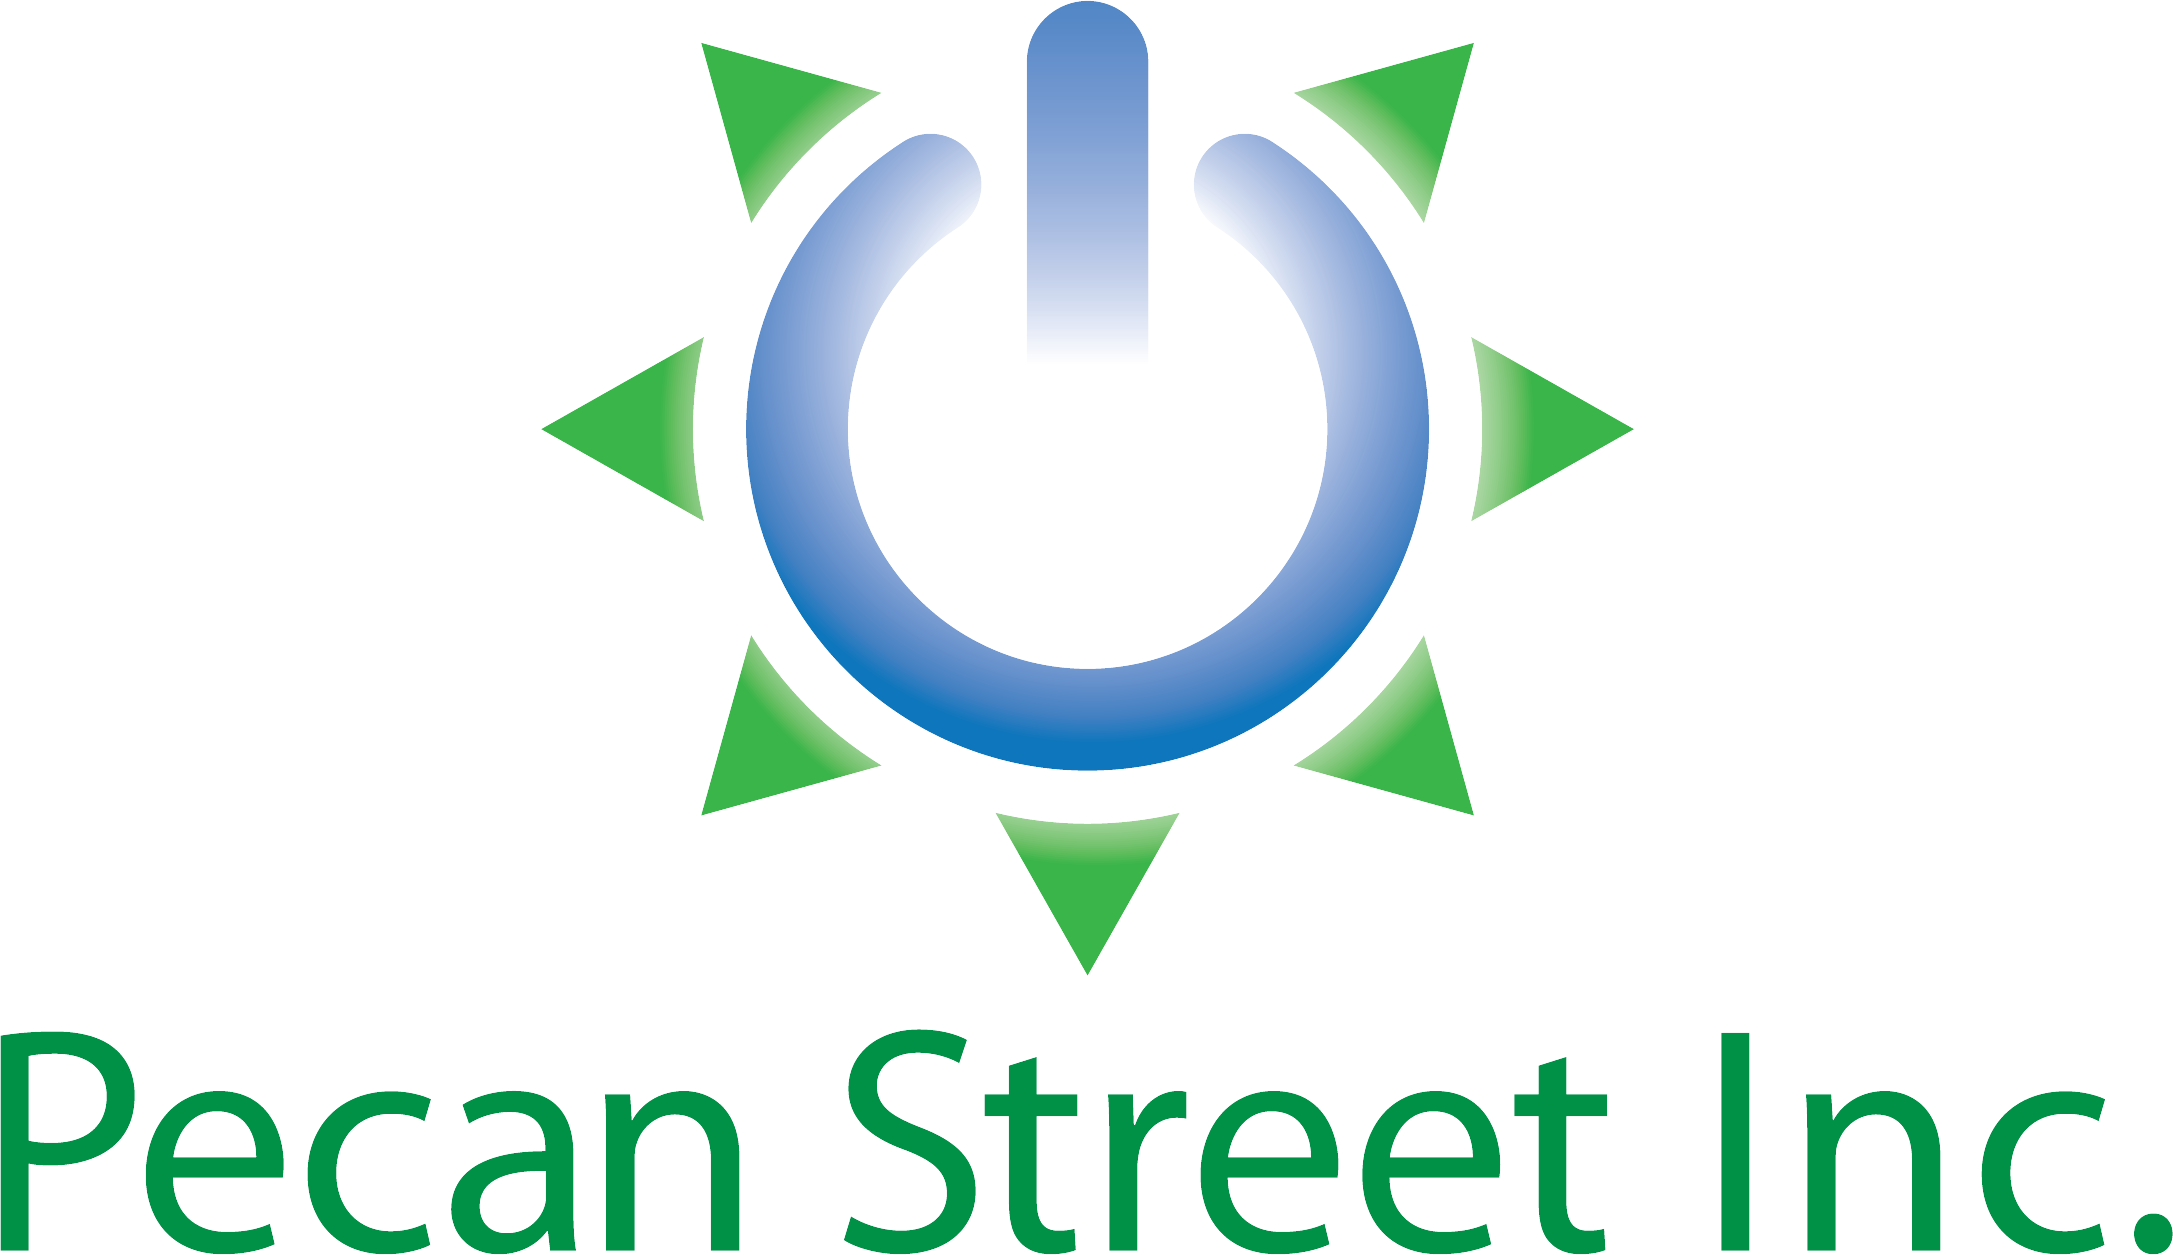 pecan street project Headquartered at the university of texas at austin, pecan street inc is a research and development organization focused on developing and testing advanced technology, business models, and customer behavior surrounding advanced energy management systems.